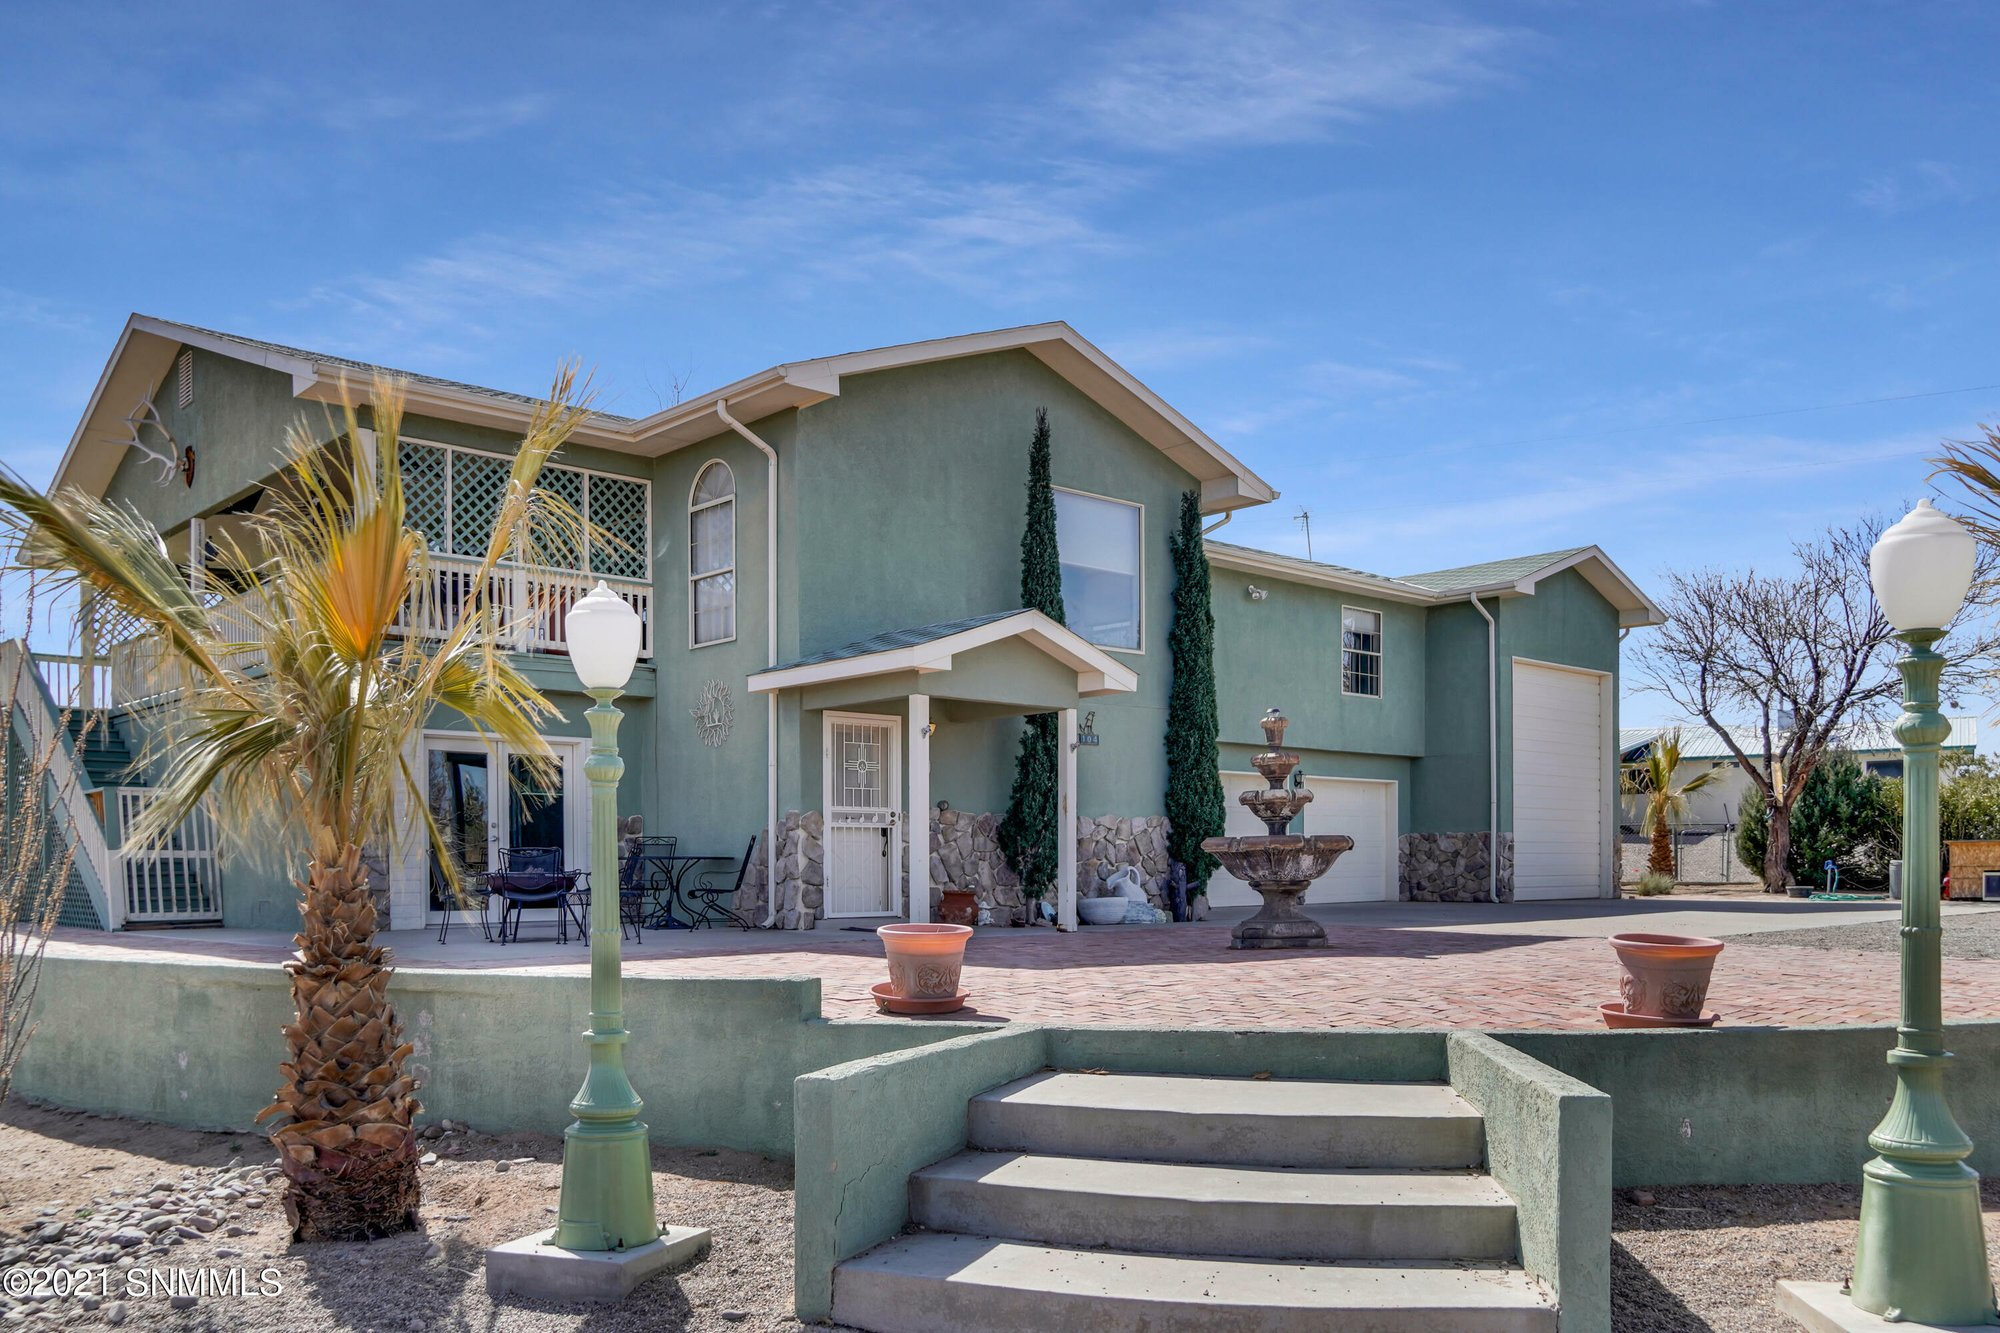 House in Elephant Butte, New Mexico, United States 1